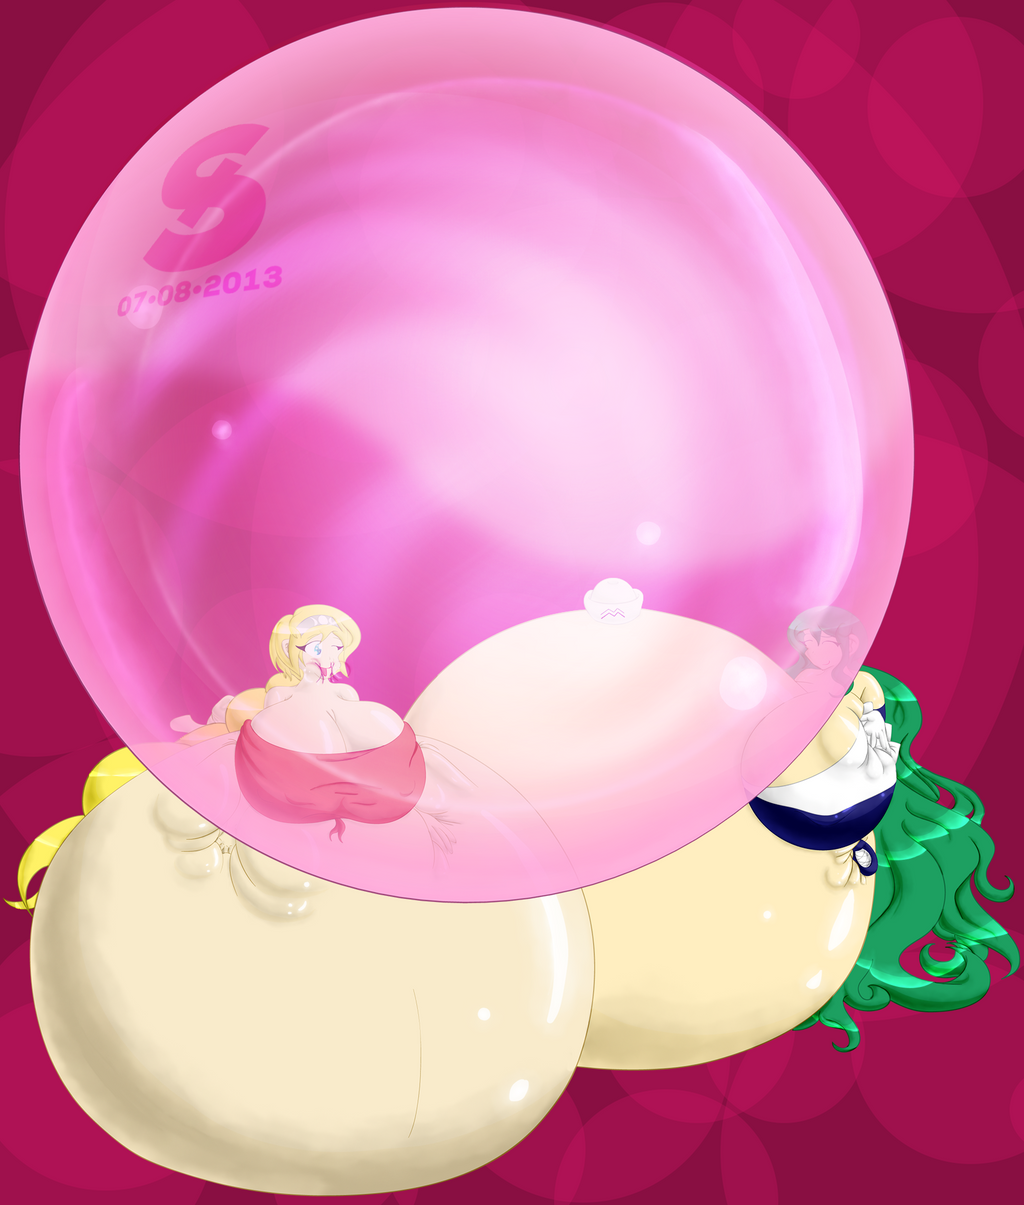 Gloria and Morgan's Bubble Fun by josephstaleknight